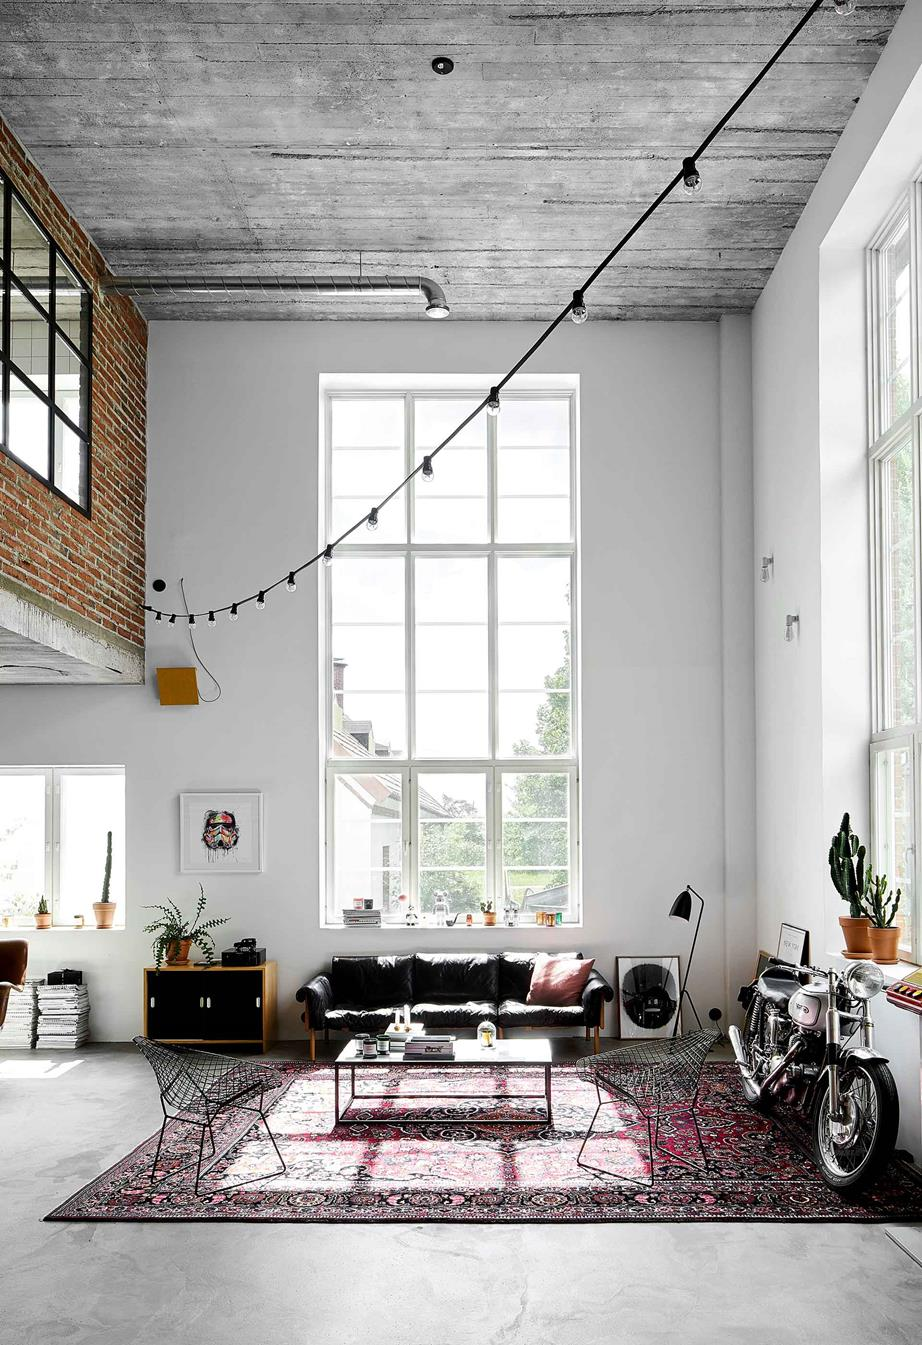 Photo of A ski factory's industrial chic loft home conversion